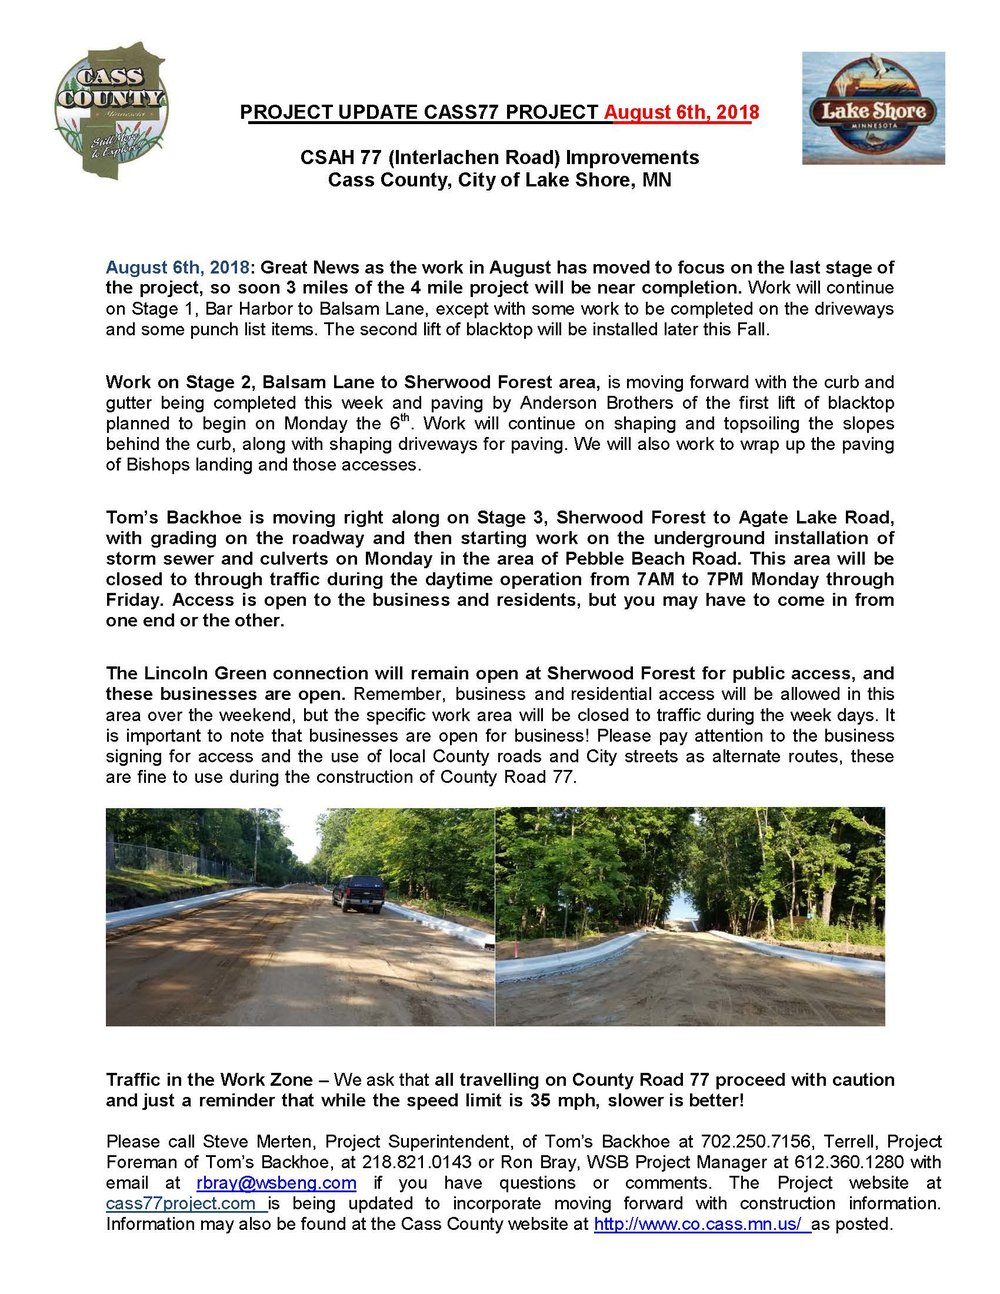 Cass County CSAH 77 Project update August 3 2018.jpg